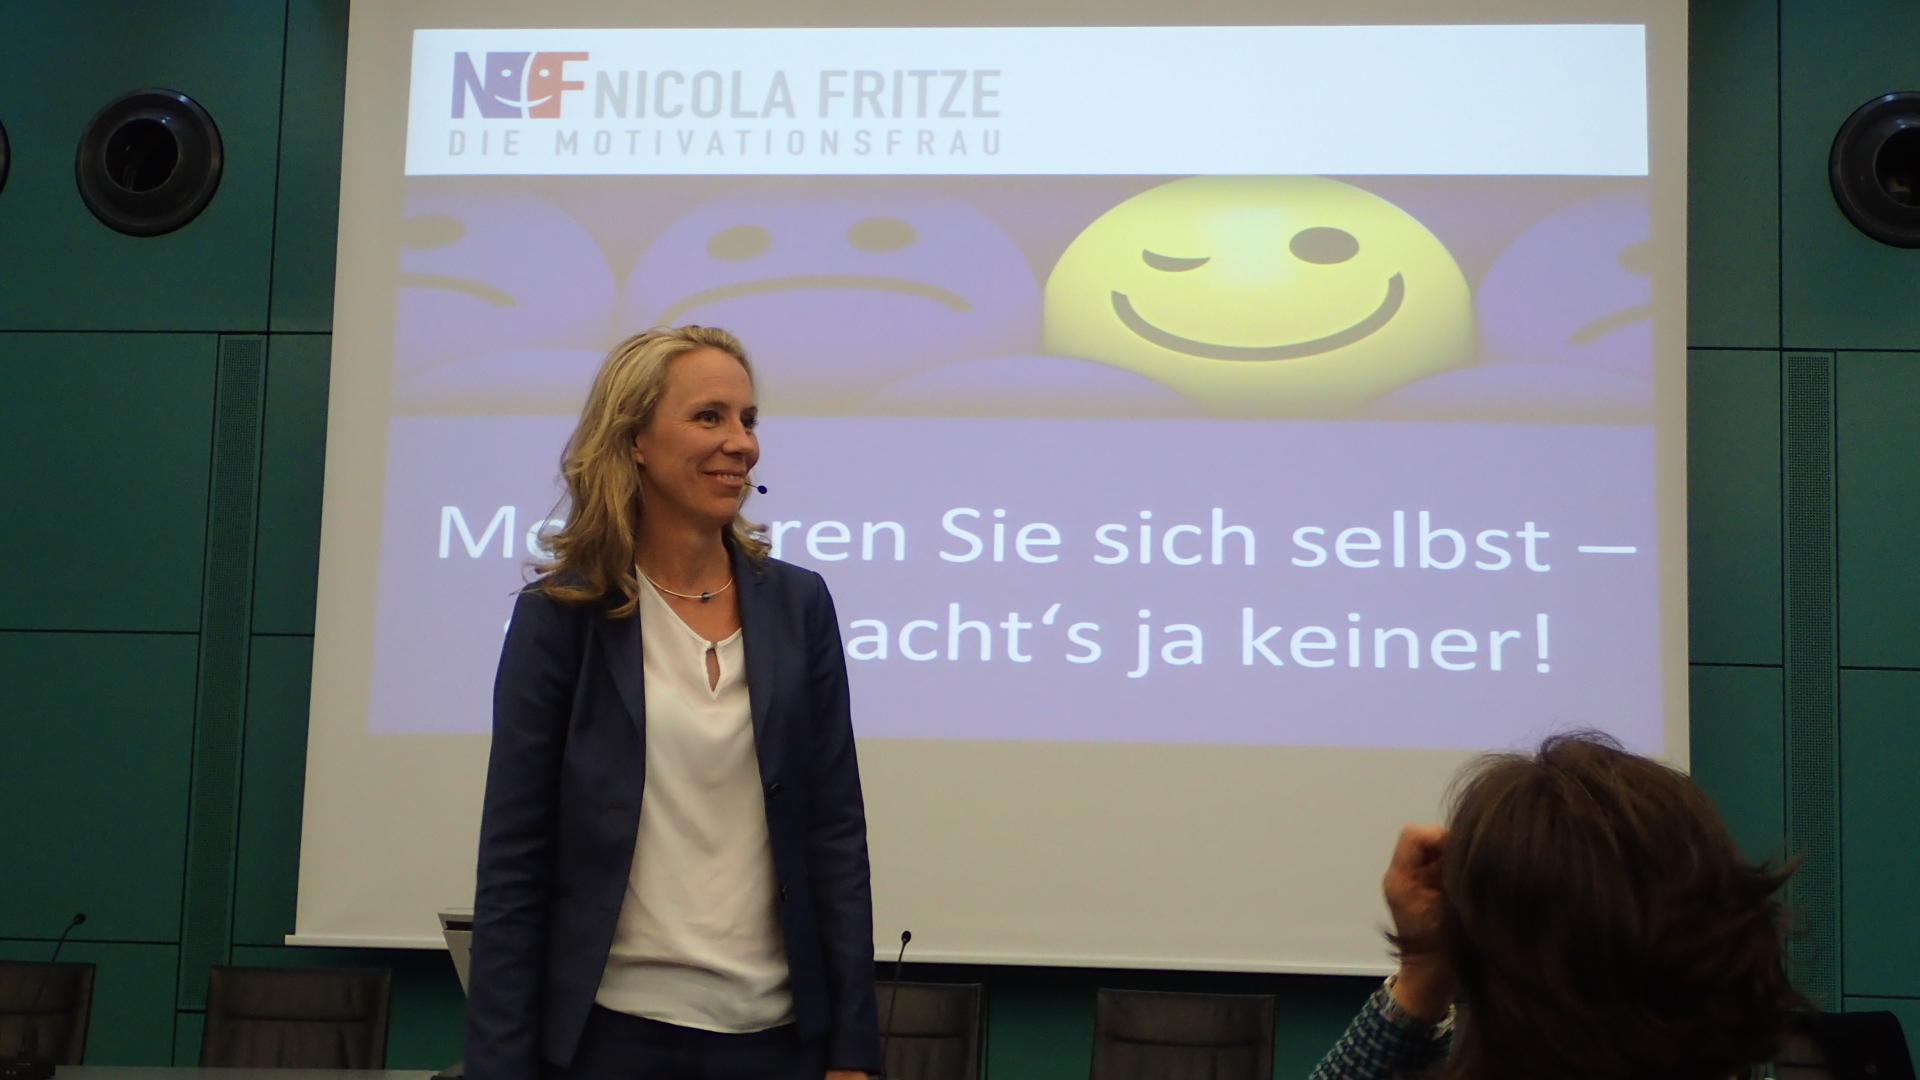 09-18 Nicola Fritze - die Motivationsfrau